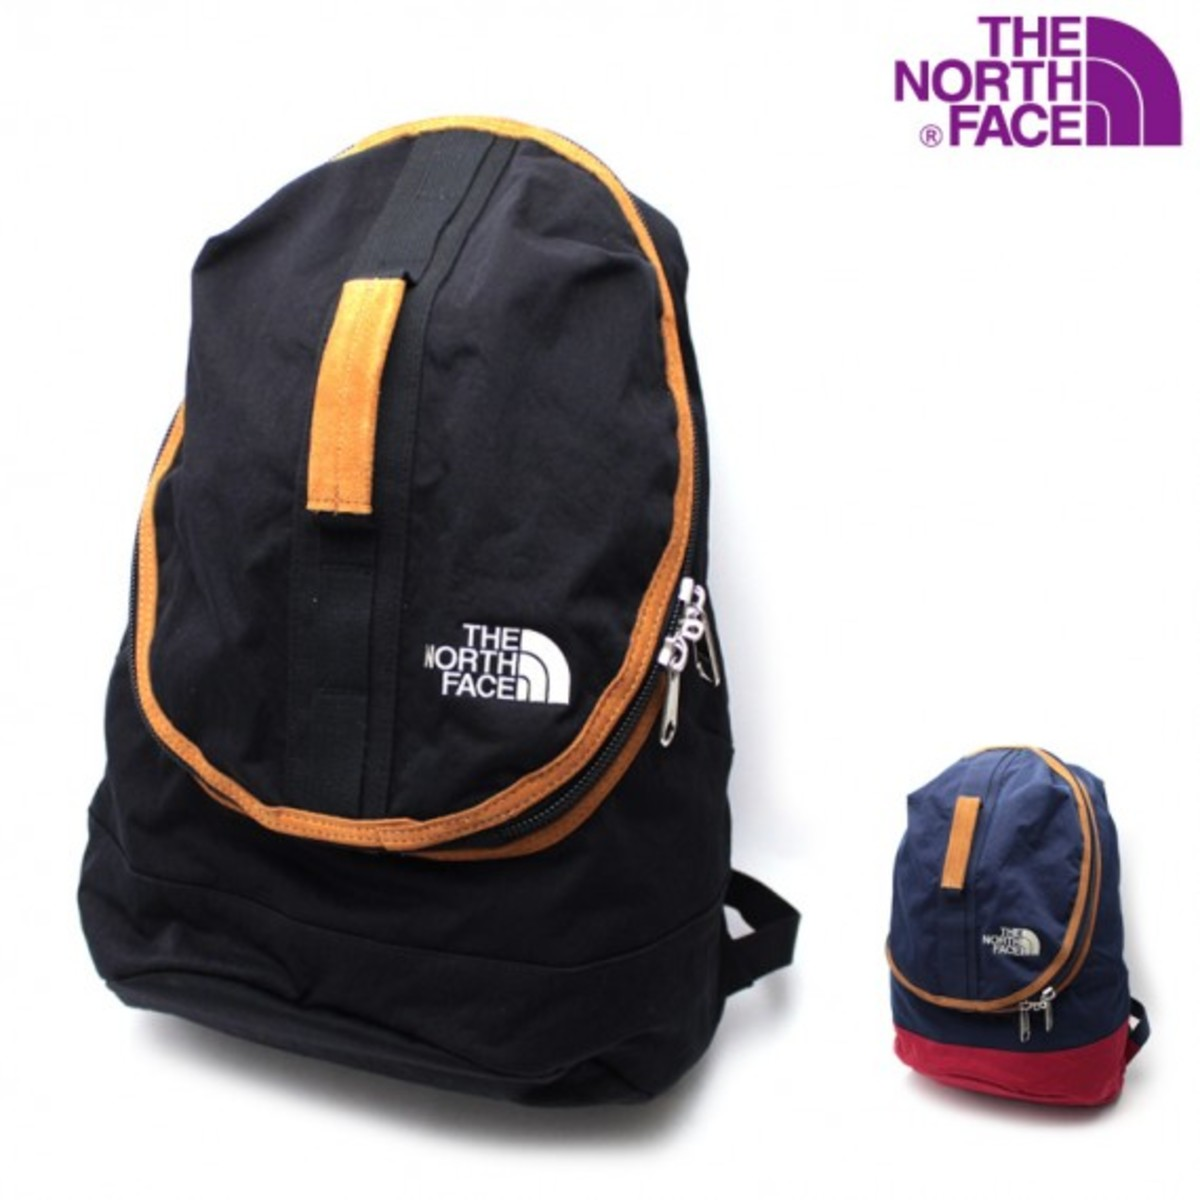 the-north-face-purple-label-fall-2012-bag-collection-08